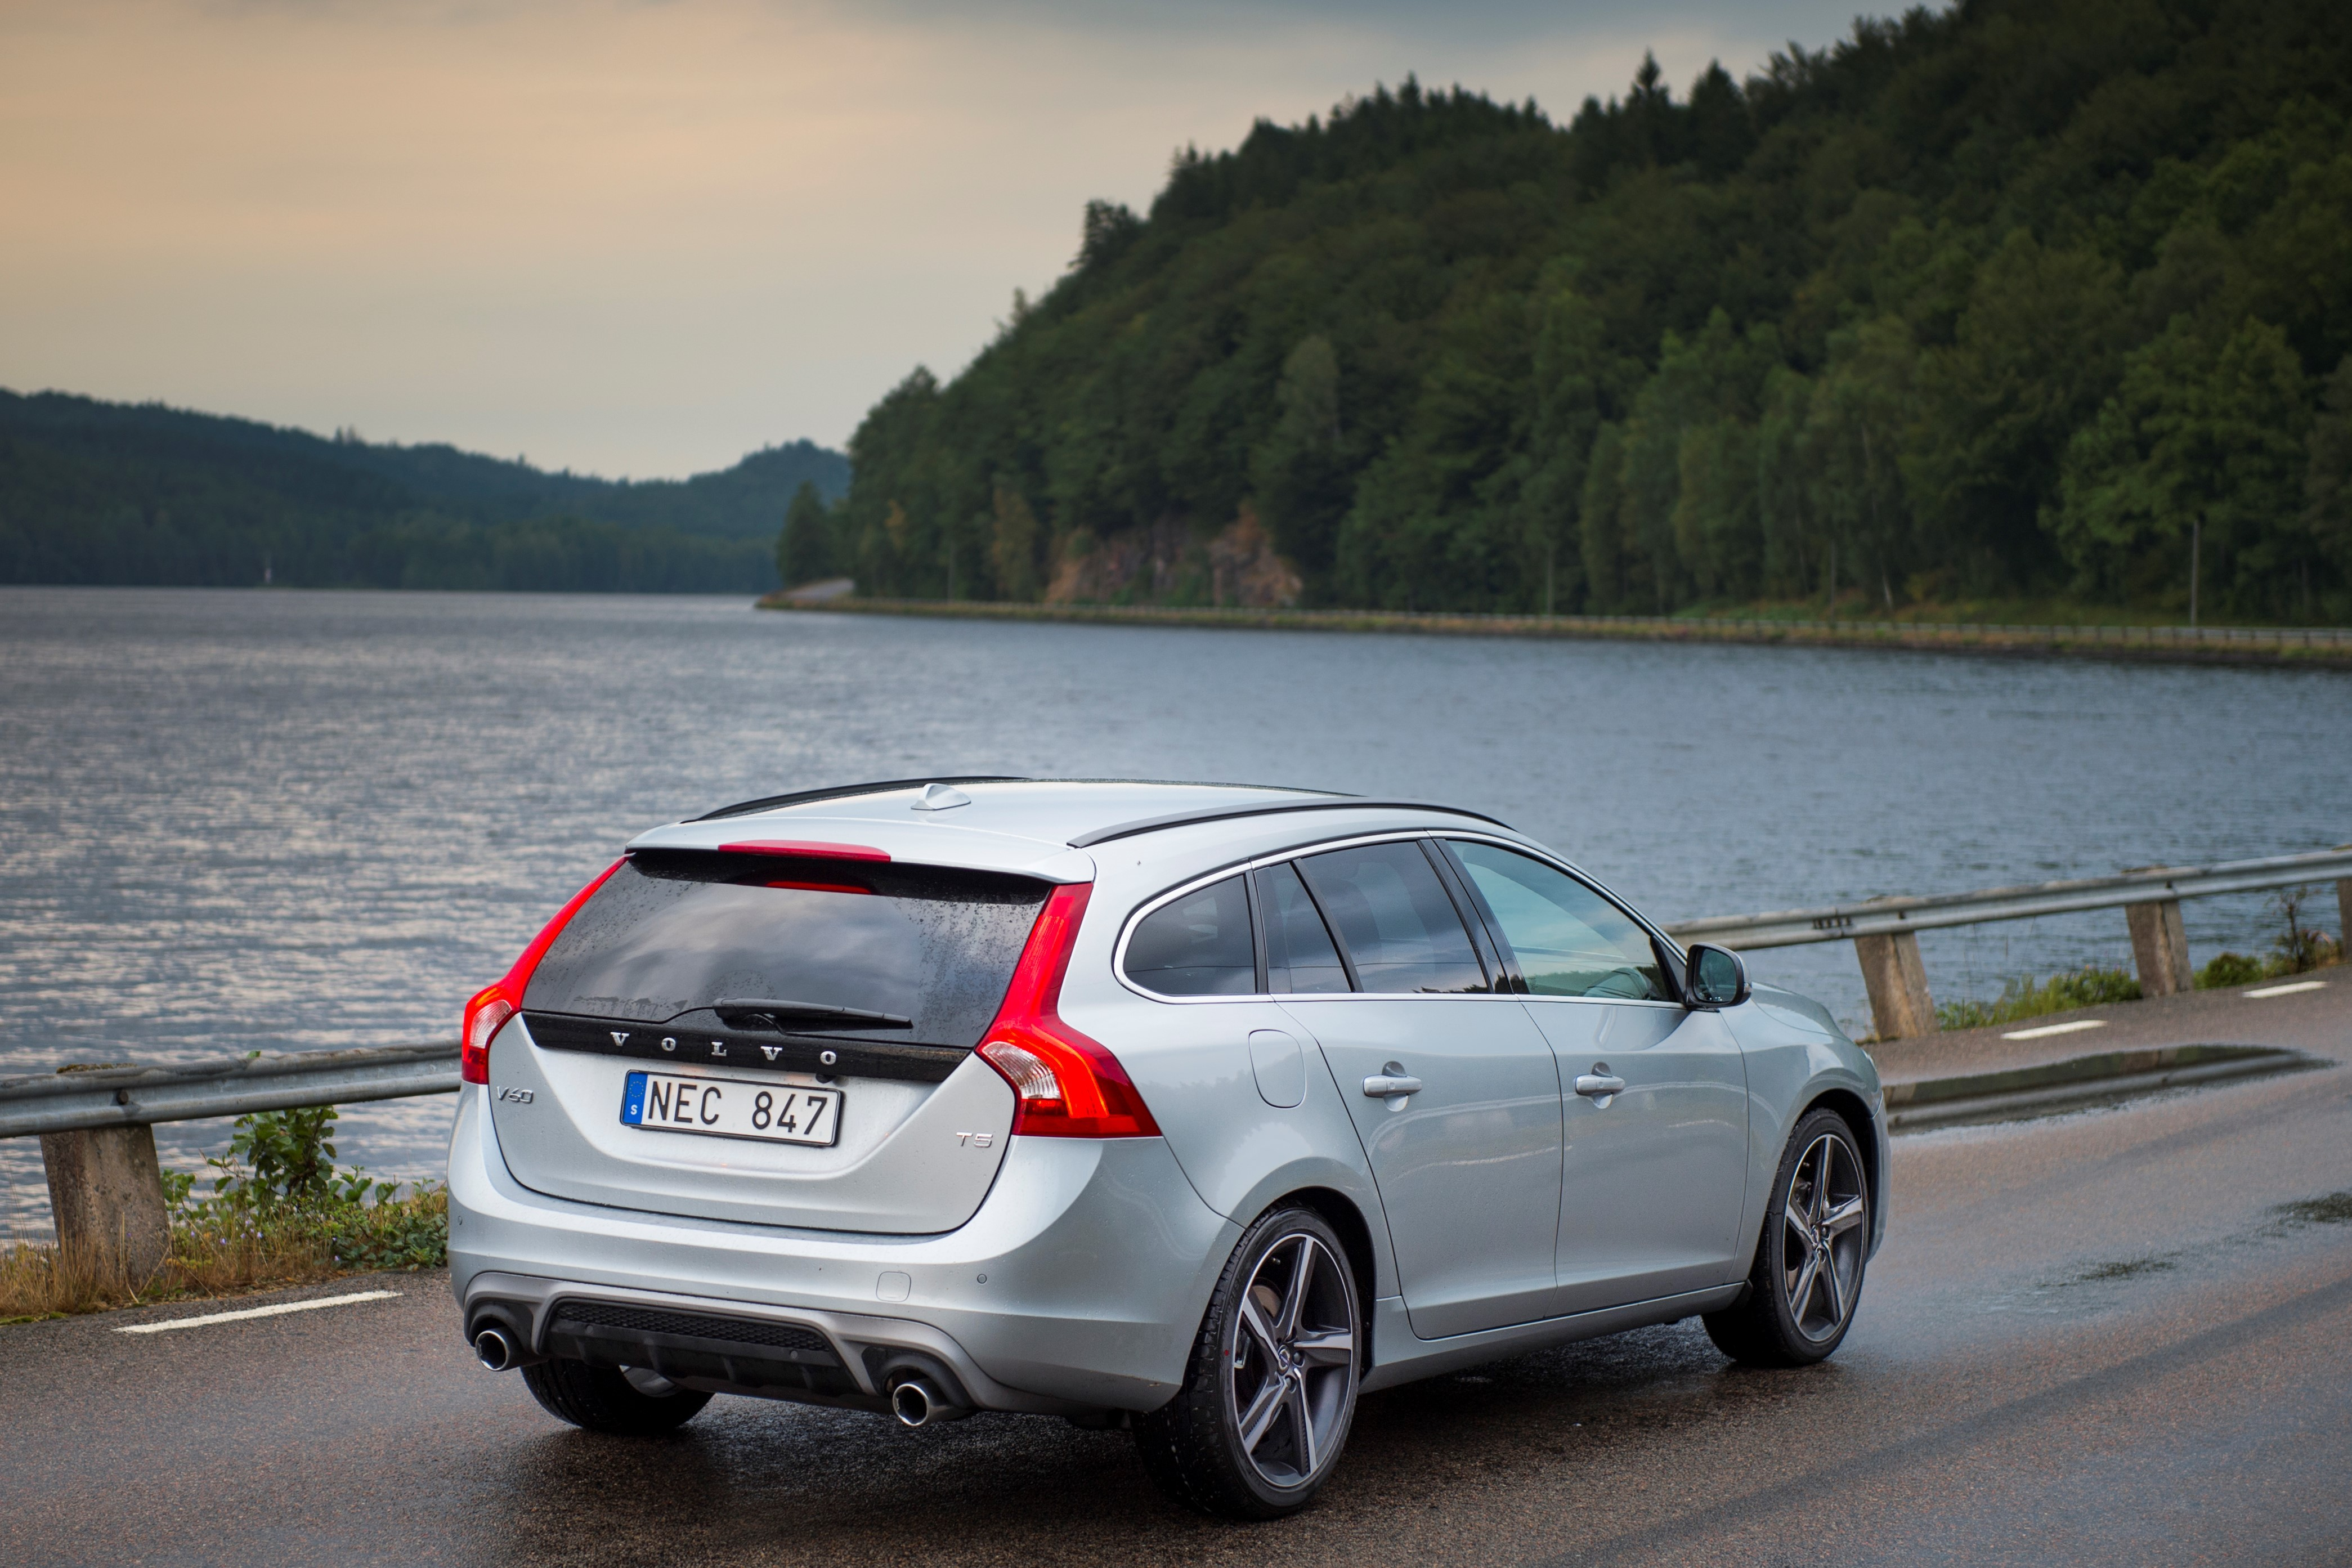 2016 volvo updates announced new t6 awd for s60 v60 and xc60 plus carplay for xc90. Black Bedroom Furniture Sets. Home Design Ideas